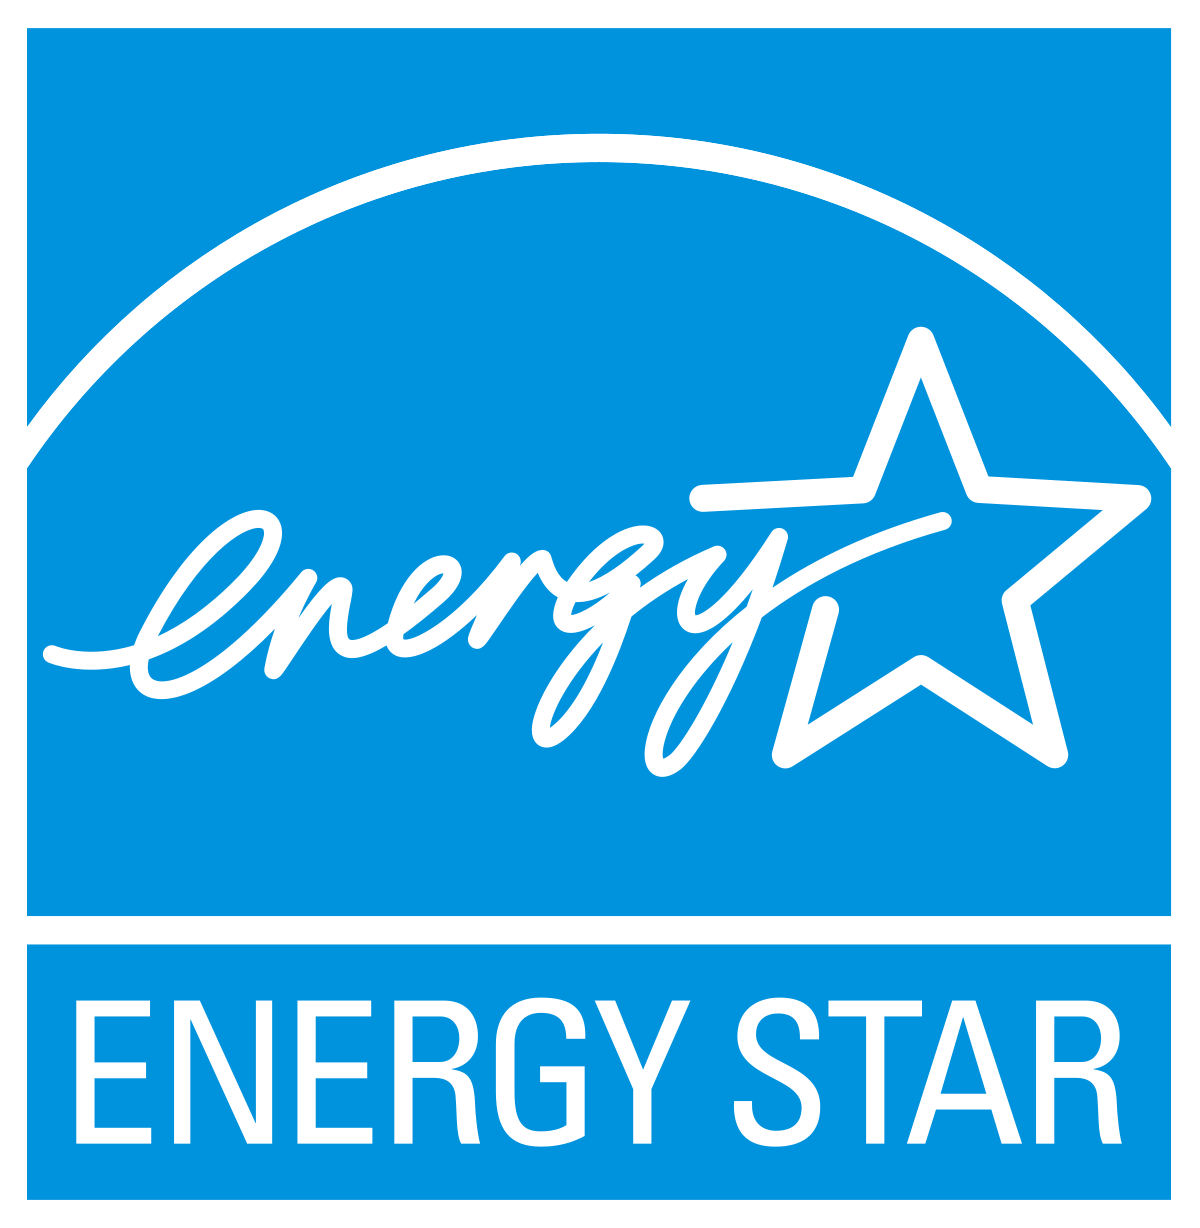 Save Energy on your AC replace with an EnergyStar appliance